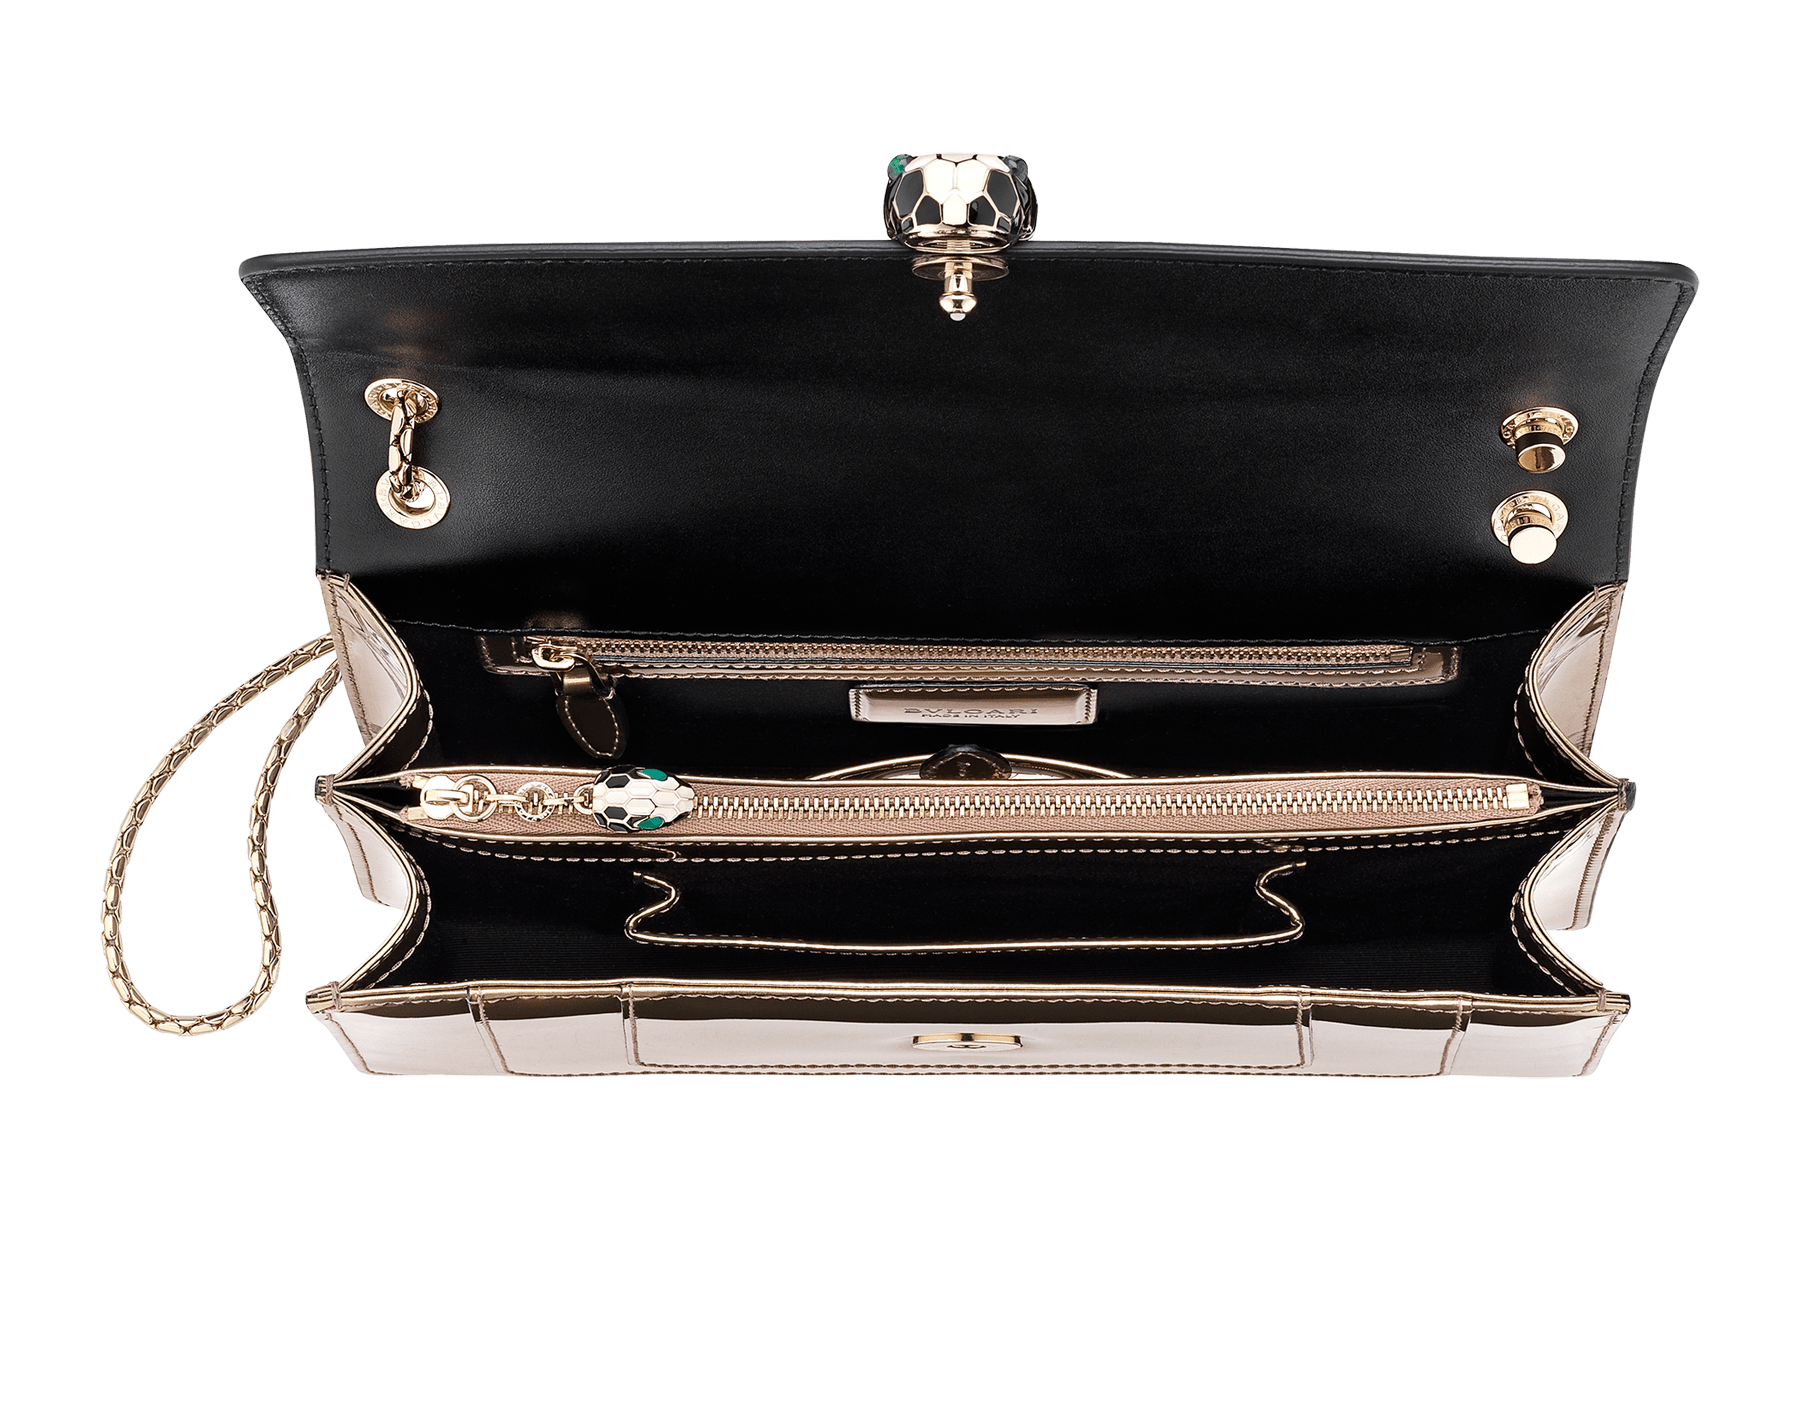 Flap cover bag Serpenti Forever in antique bronze brushed metallic calf leather with brass light gold plated Serpenti head closure in black and white enamel with eyes in green malachite. 39794 image 4